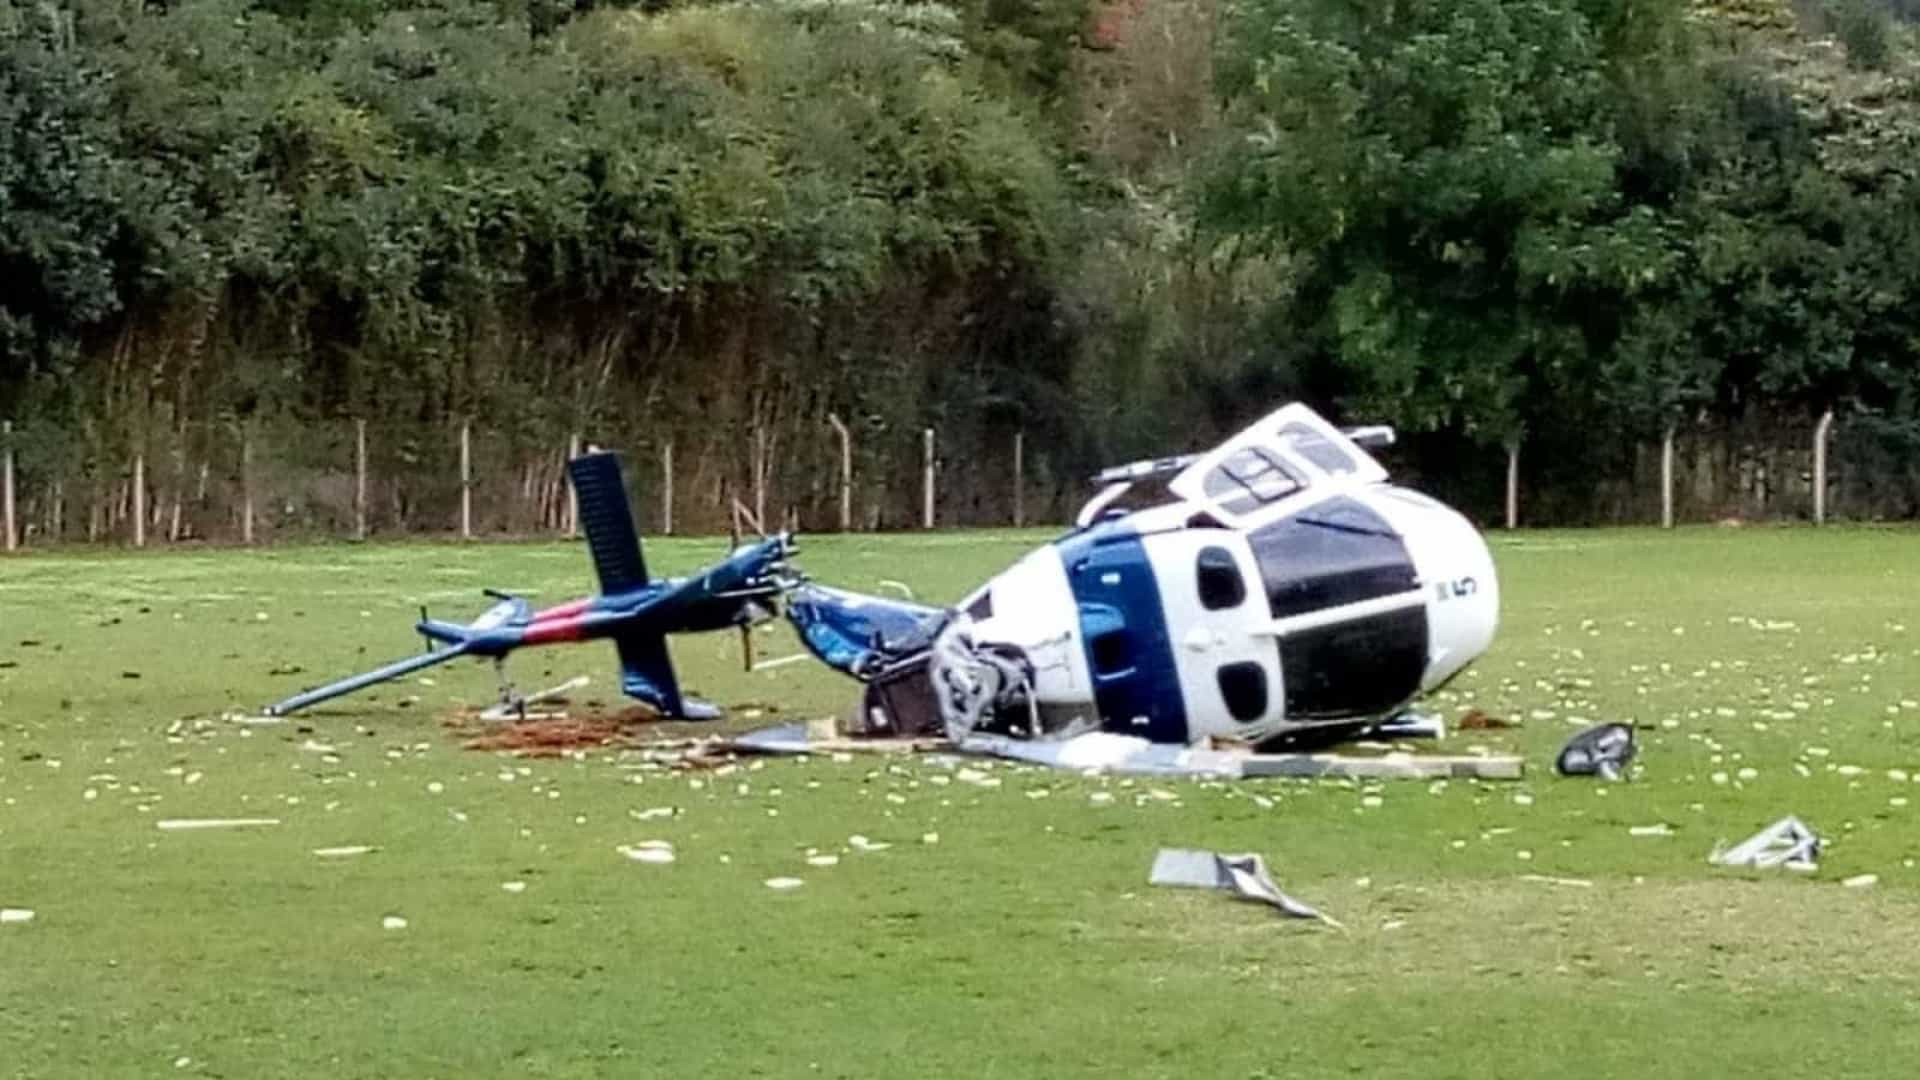 Helicóptero da PM cai com governador do ES a bordo